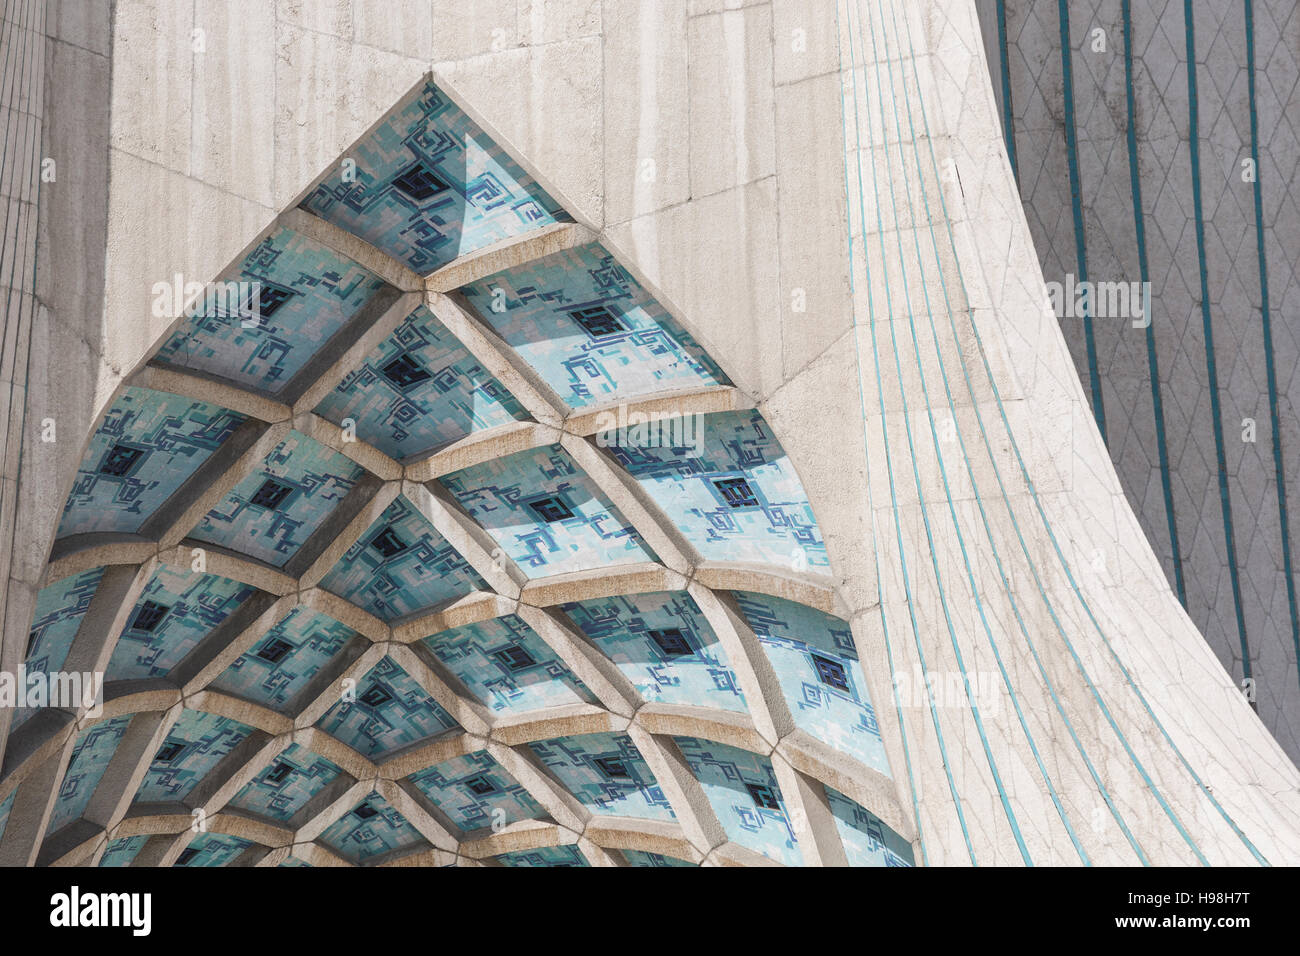 TEHERAN, IRAN - OCTOBER 03, 2016: Azadi Tower located at Azadi ...